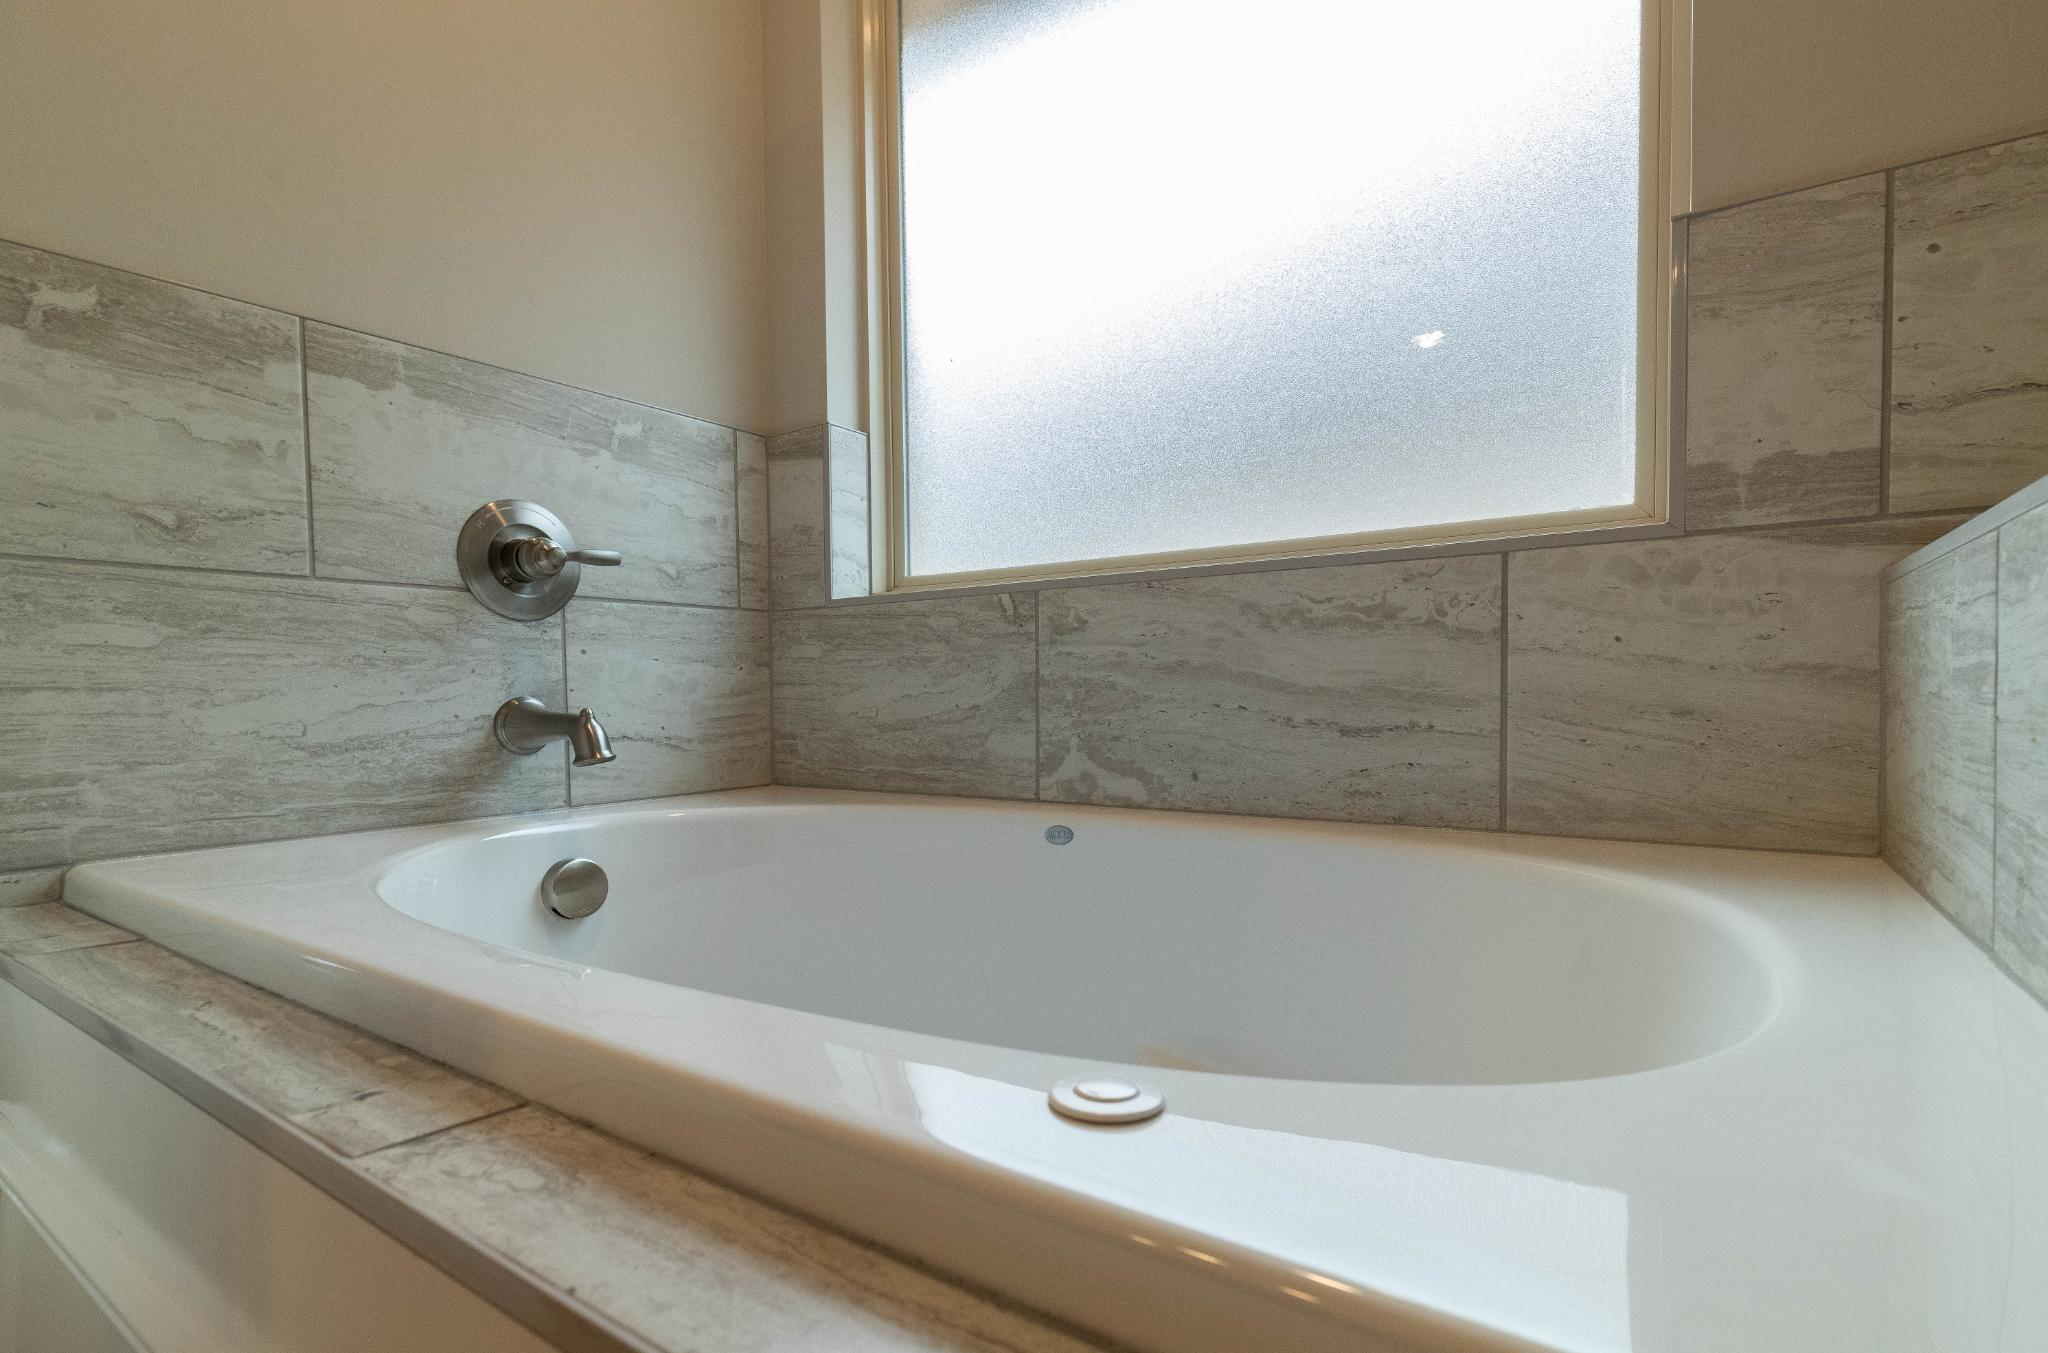 Bathroom featured in the Blue Spruce Half Bath PLUS By Homes By Taber in Oklahoma City, OK